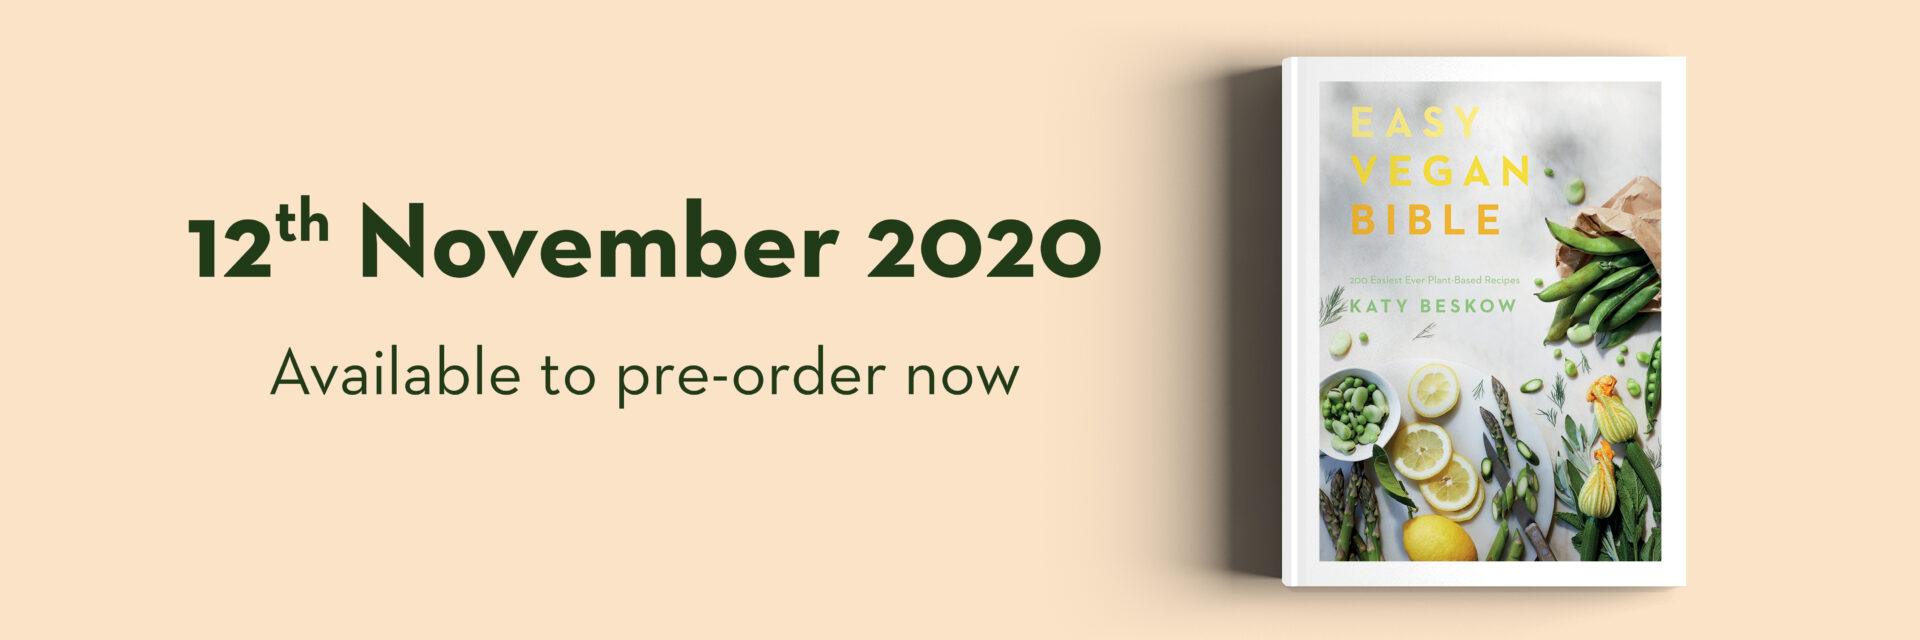 Easy Vegan Bible book by Katy Beskow 12th November 2020. Available to pre-order.